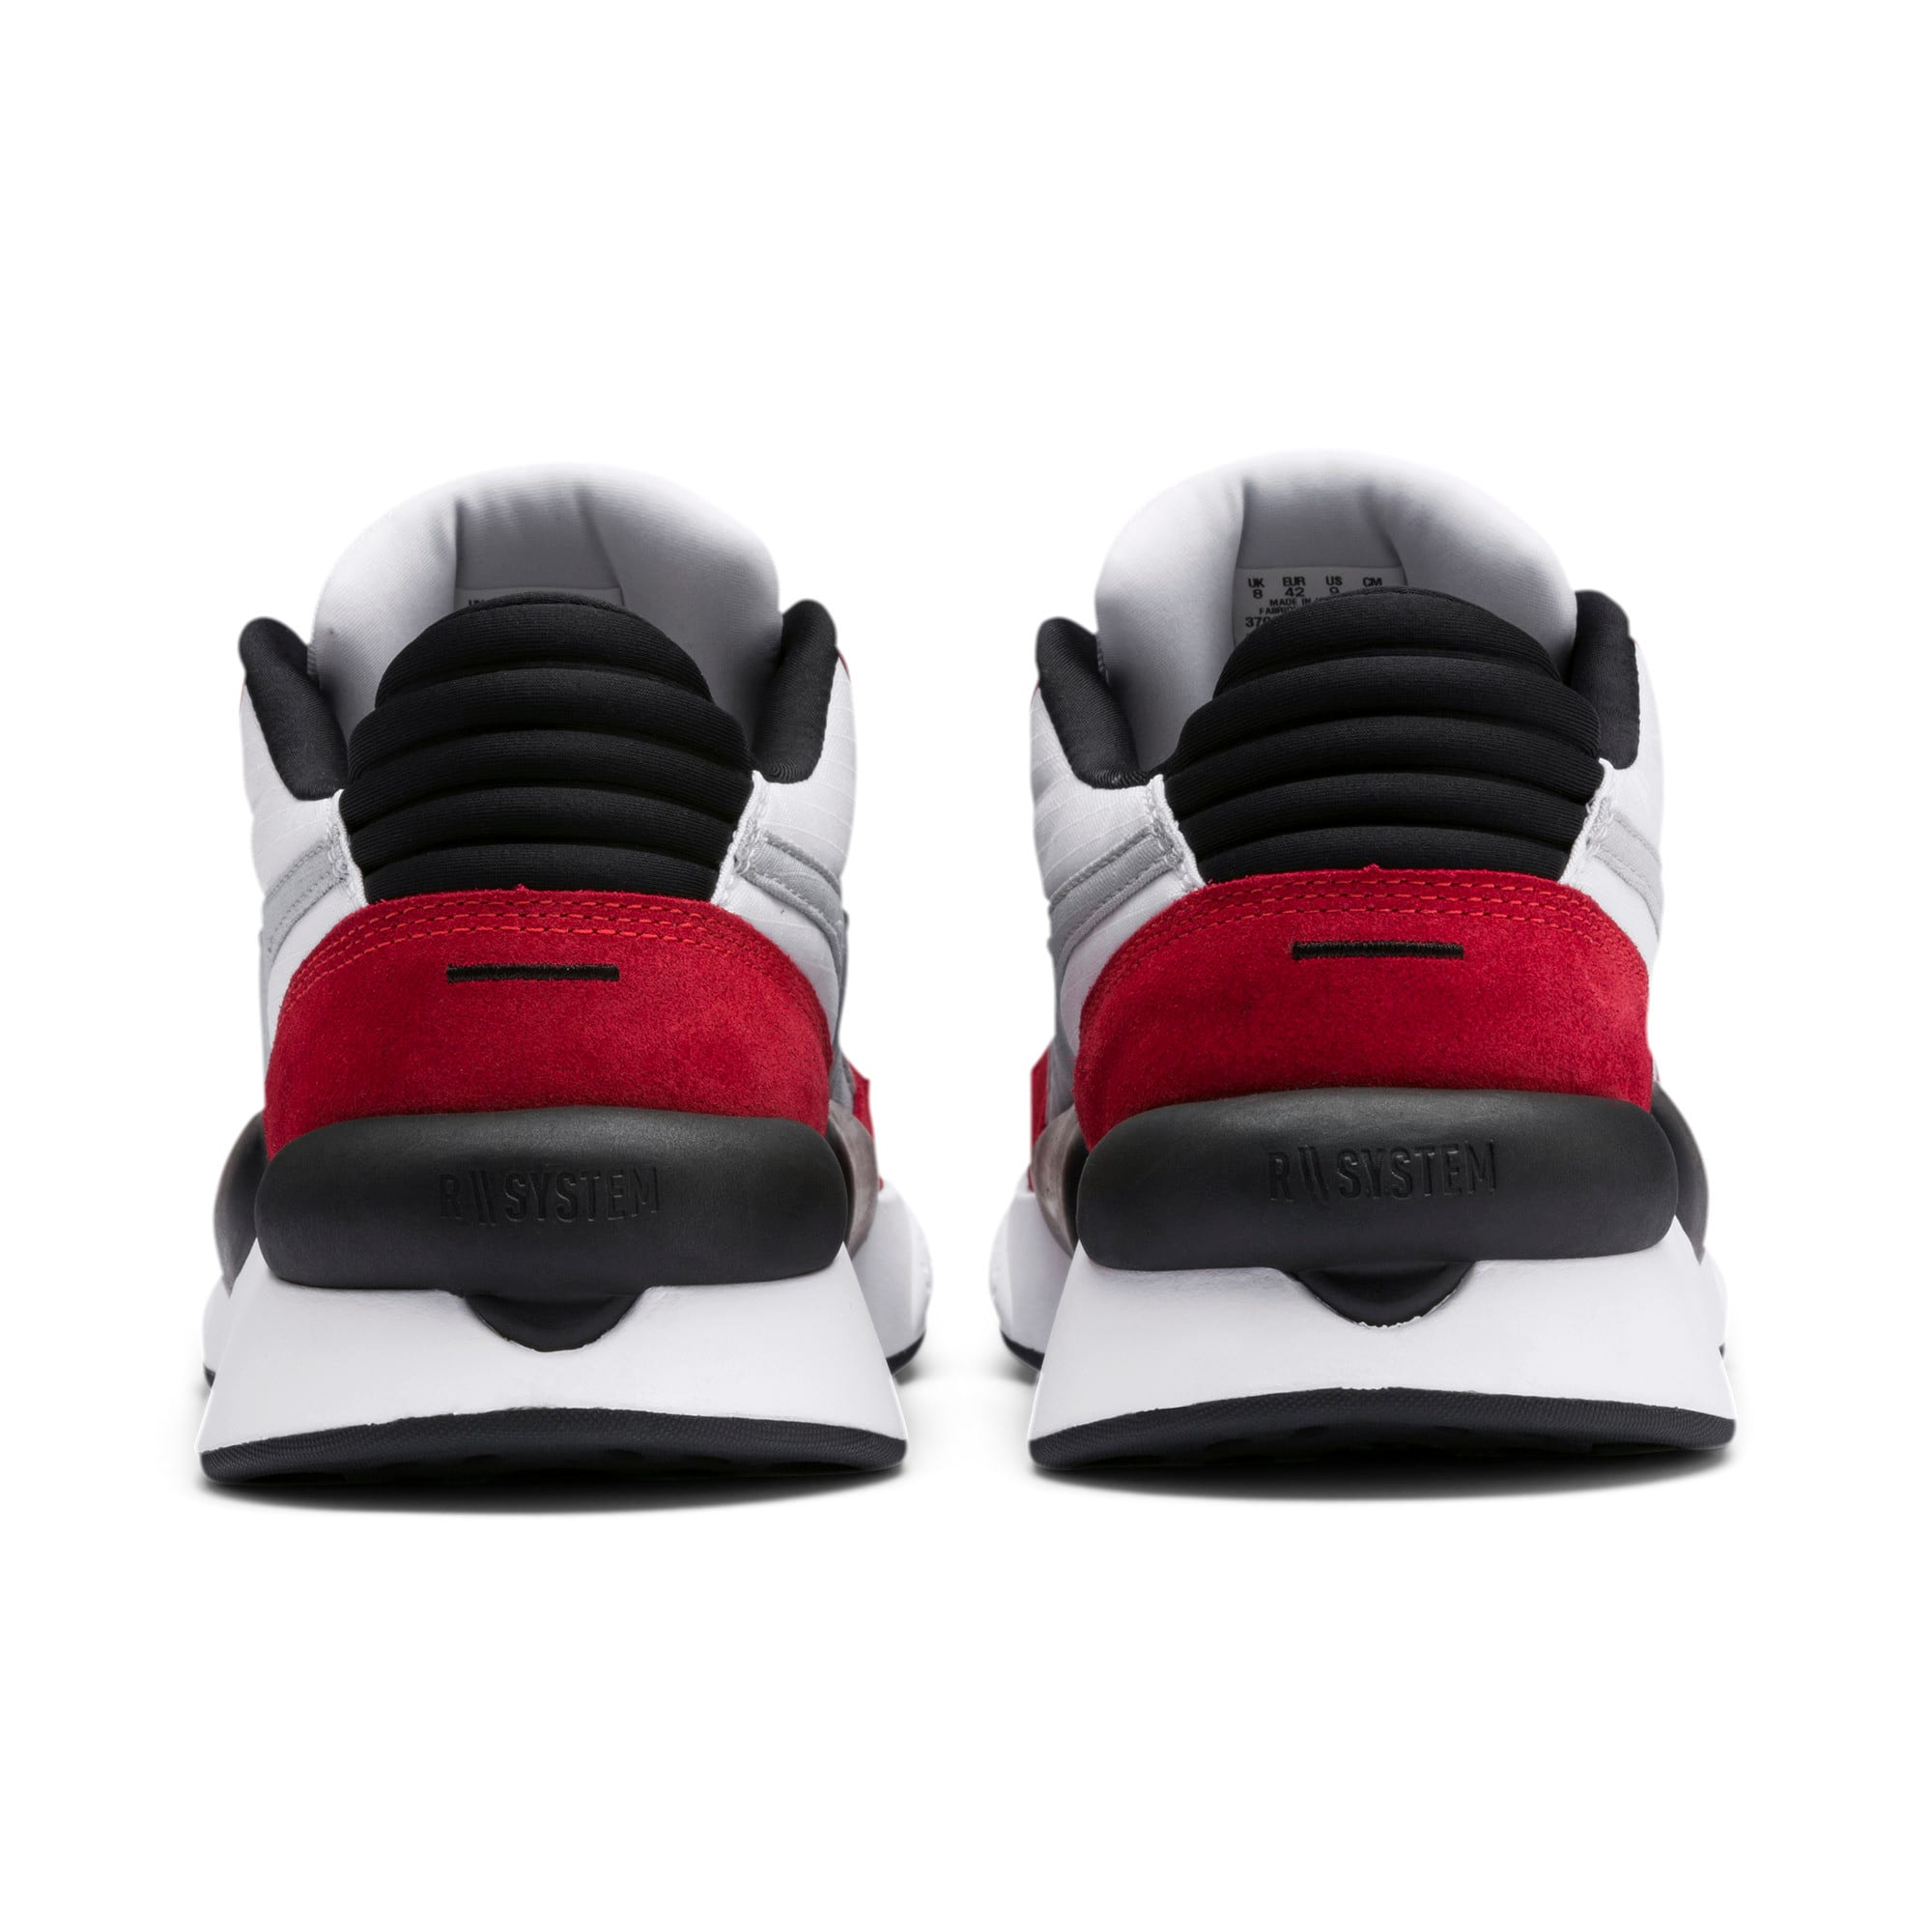 Thumbnail 4 of RS 9.8 Space Sneakers, Puma White-High Risk Red, medium